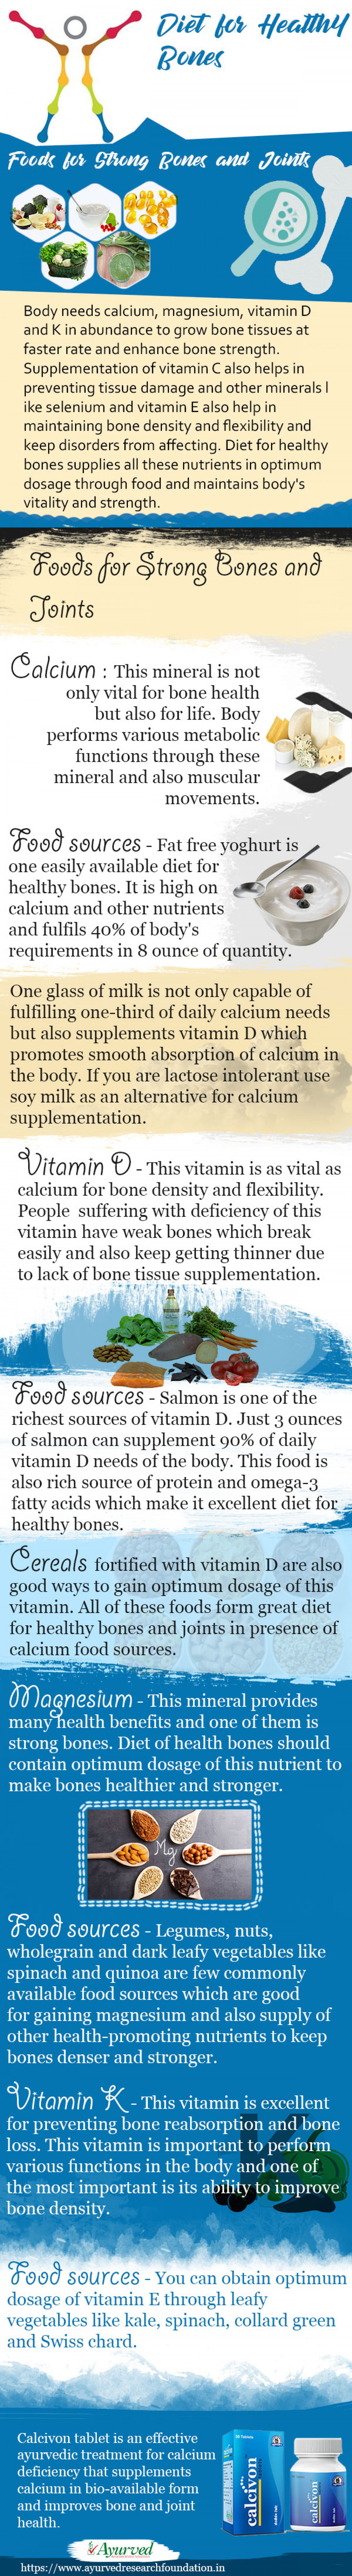 Healthy Diet for Bones Infographic, Best Foods for Strong Joints Infographic